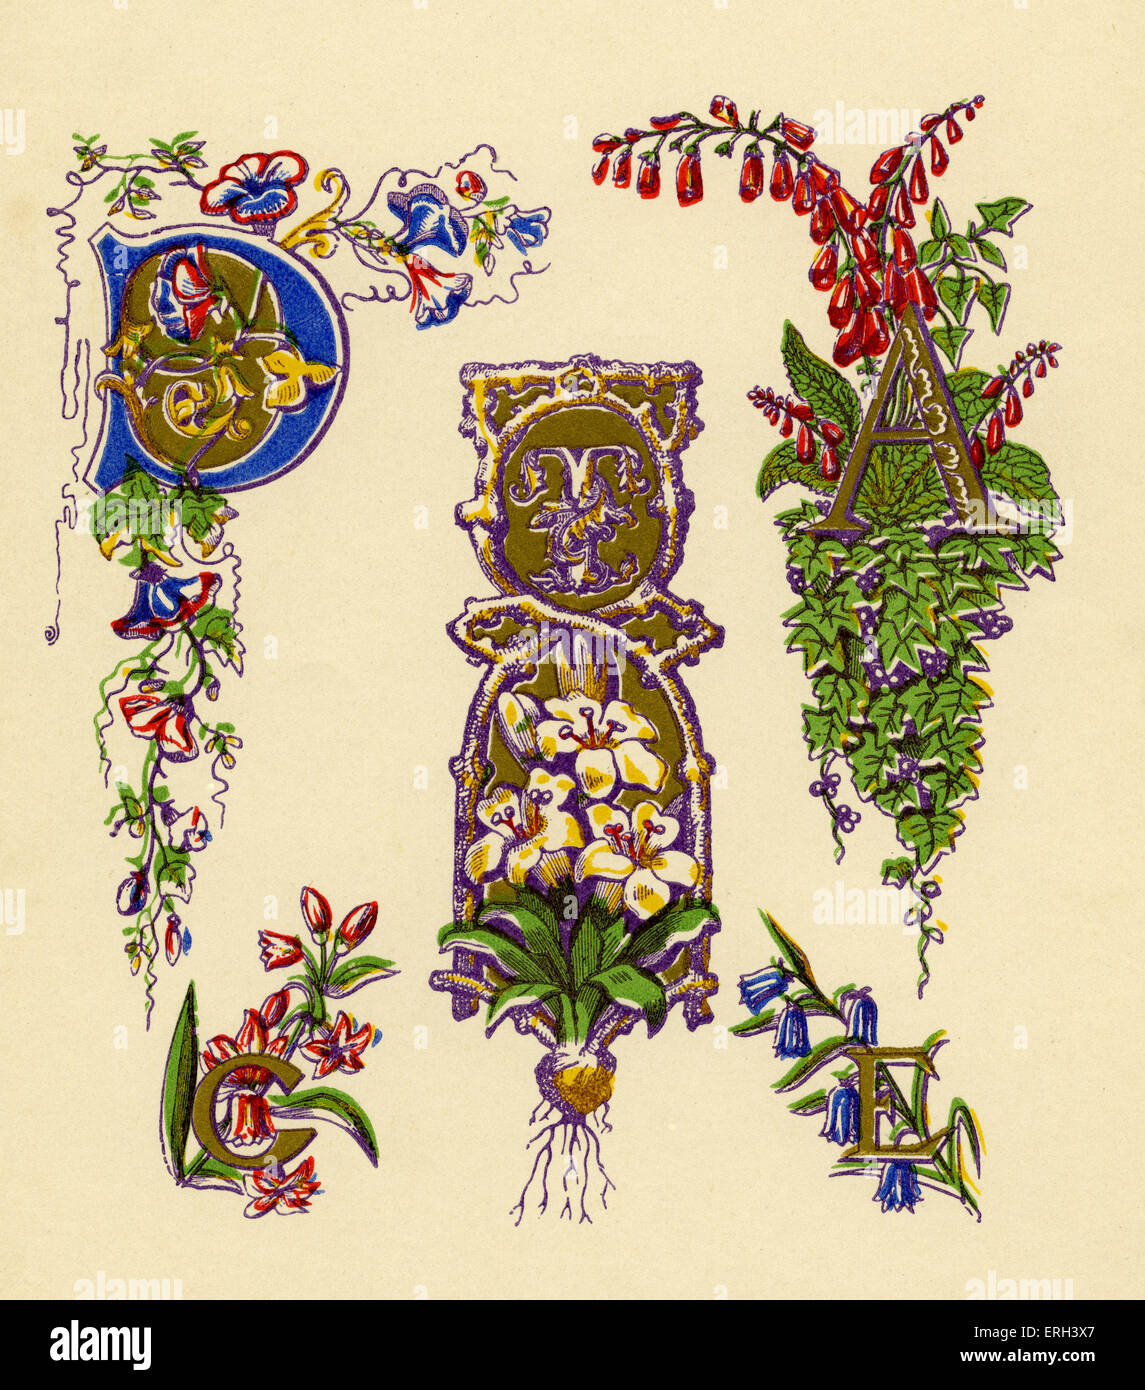 Illuminated letters D, T, A, C and E. Sixteenth century style.  (1886 source.) - Stock Image